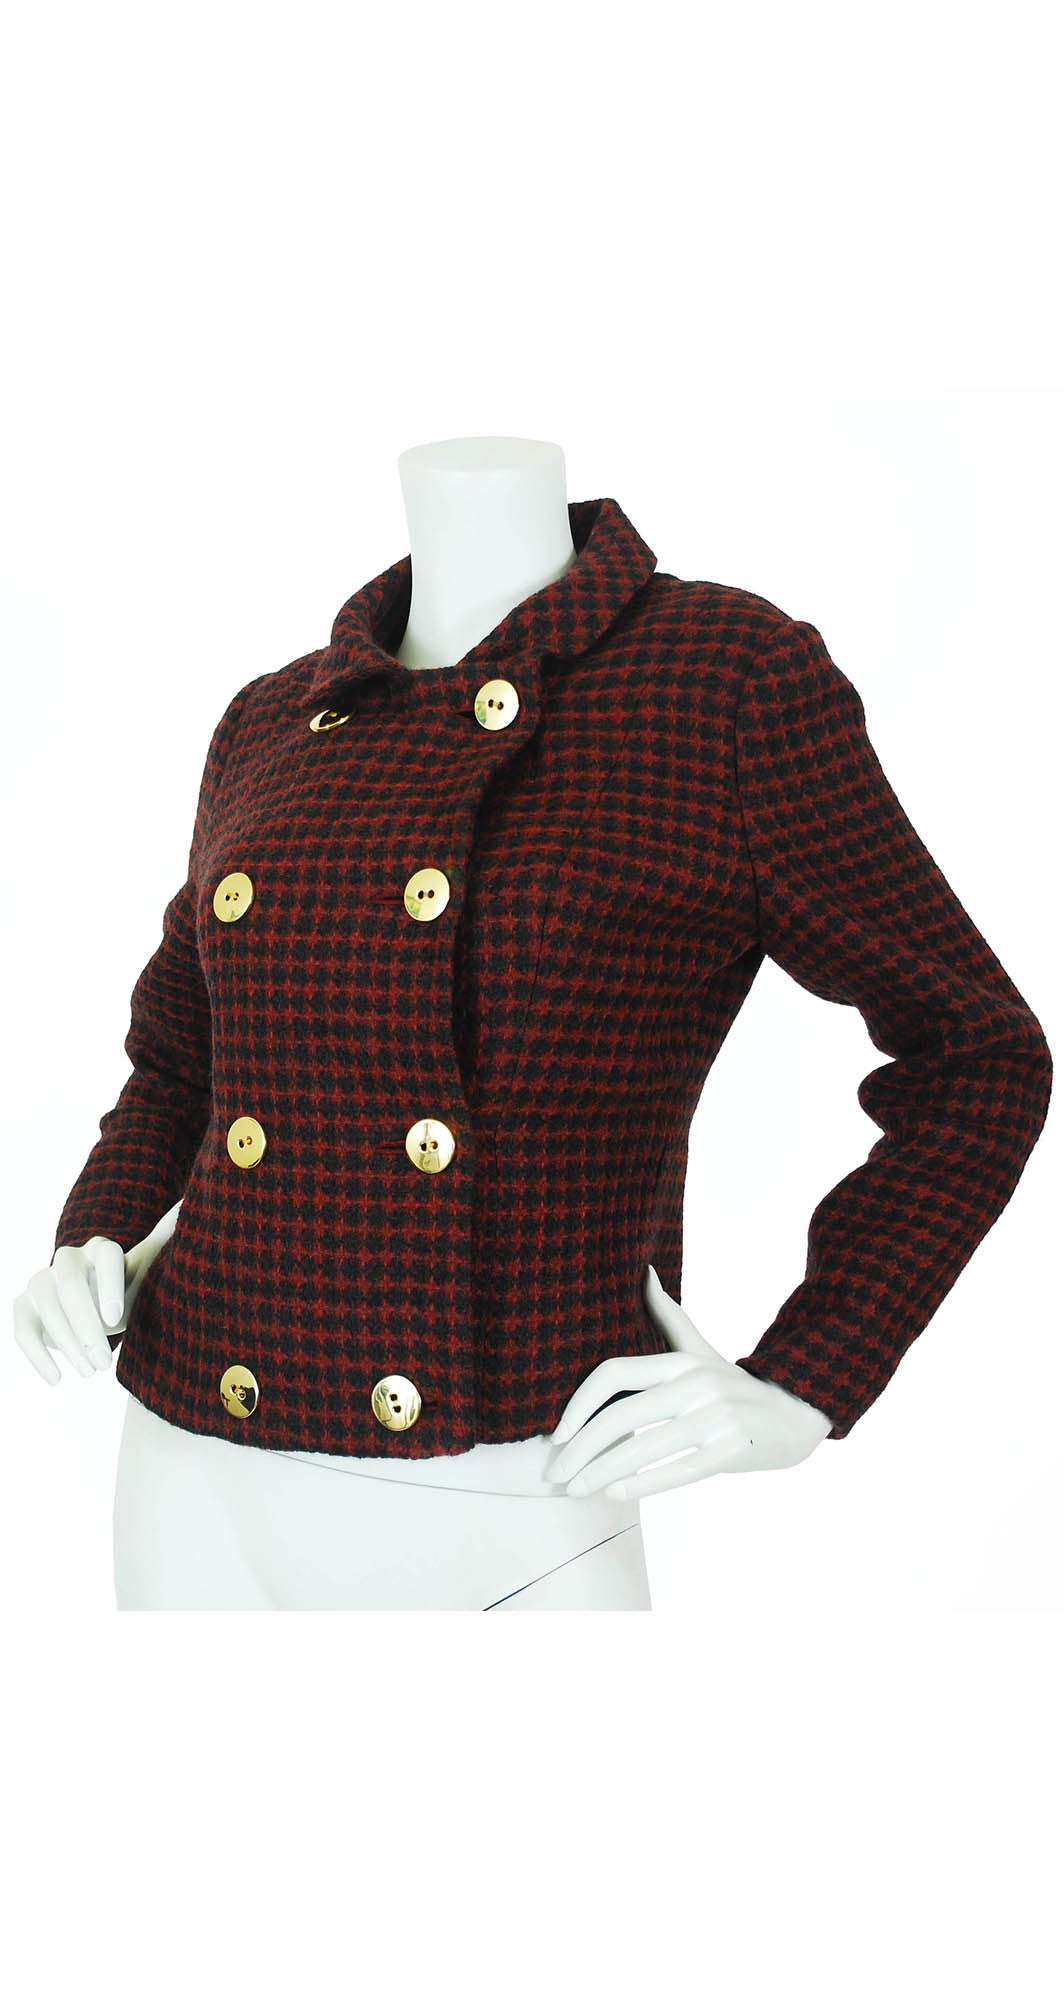 Early 1960's Red & Black Checkered Wool Jacket